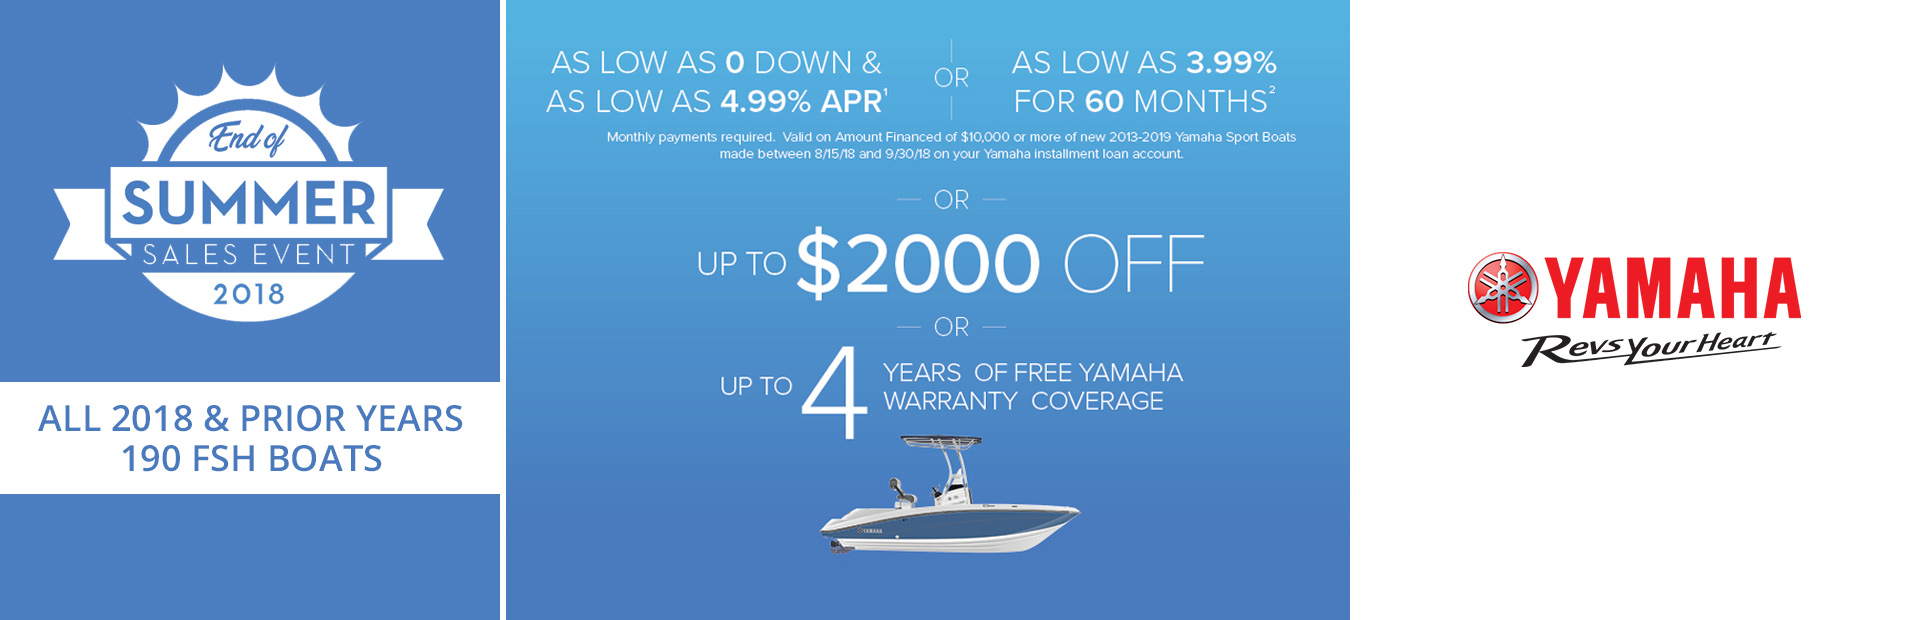 Yamaha: End of Summer Sales Event - 2018 & Prior FSH Boats